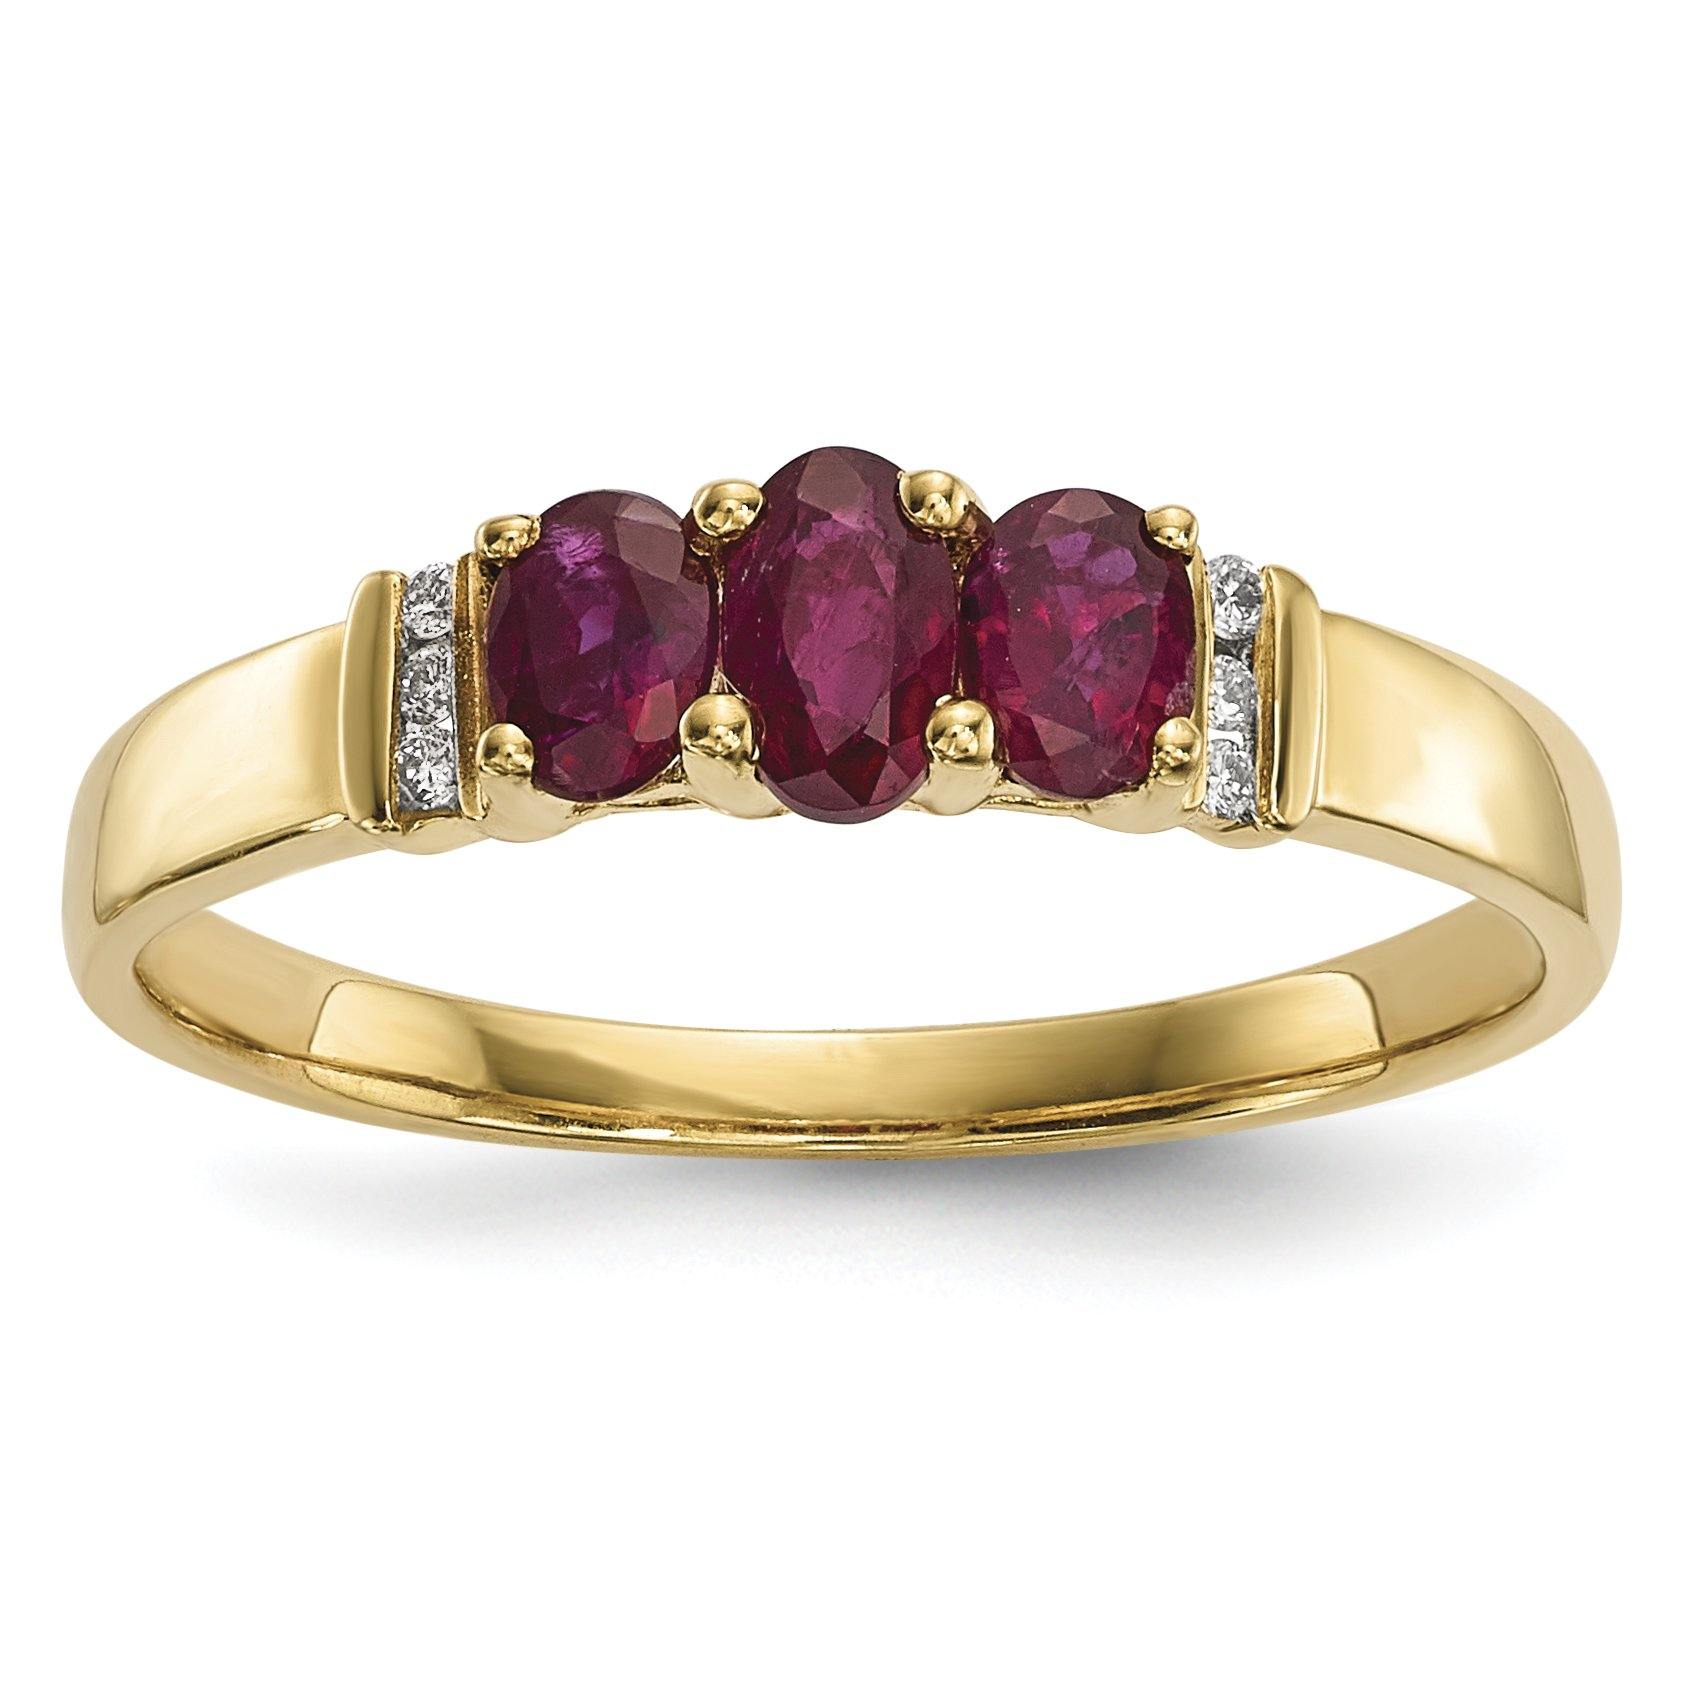 ICE CARATS 14k Yellow Gold Triple Red Ruby Diamond Band Ring Size 7.00 Gemstone Fine Jewelry Gift Set For Women Heart